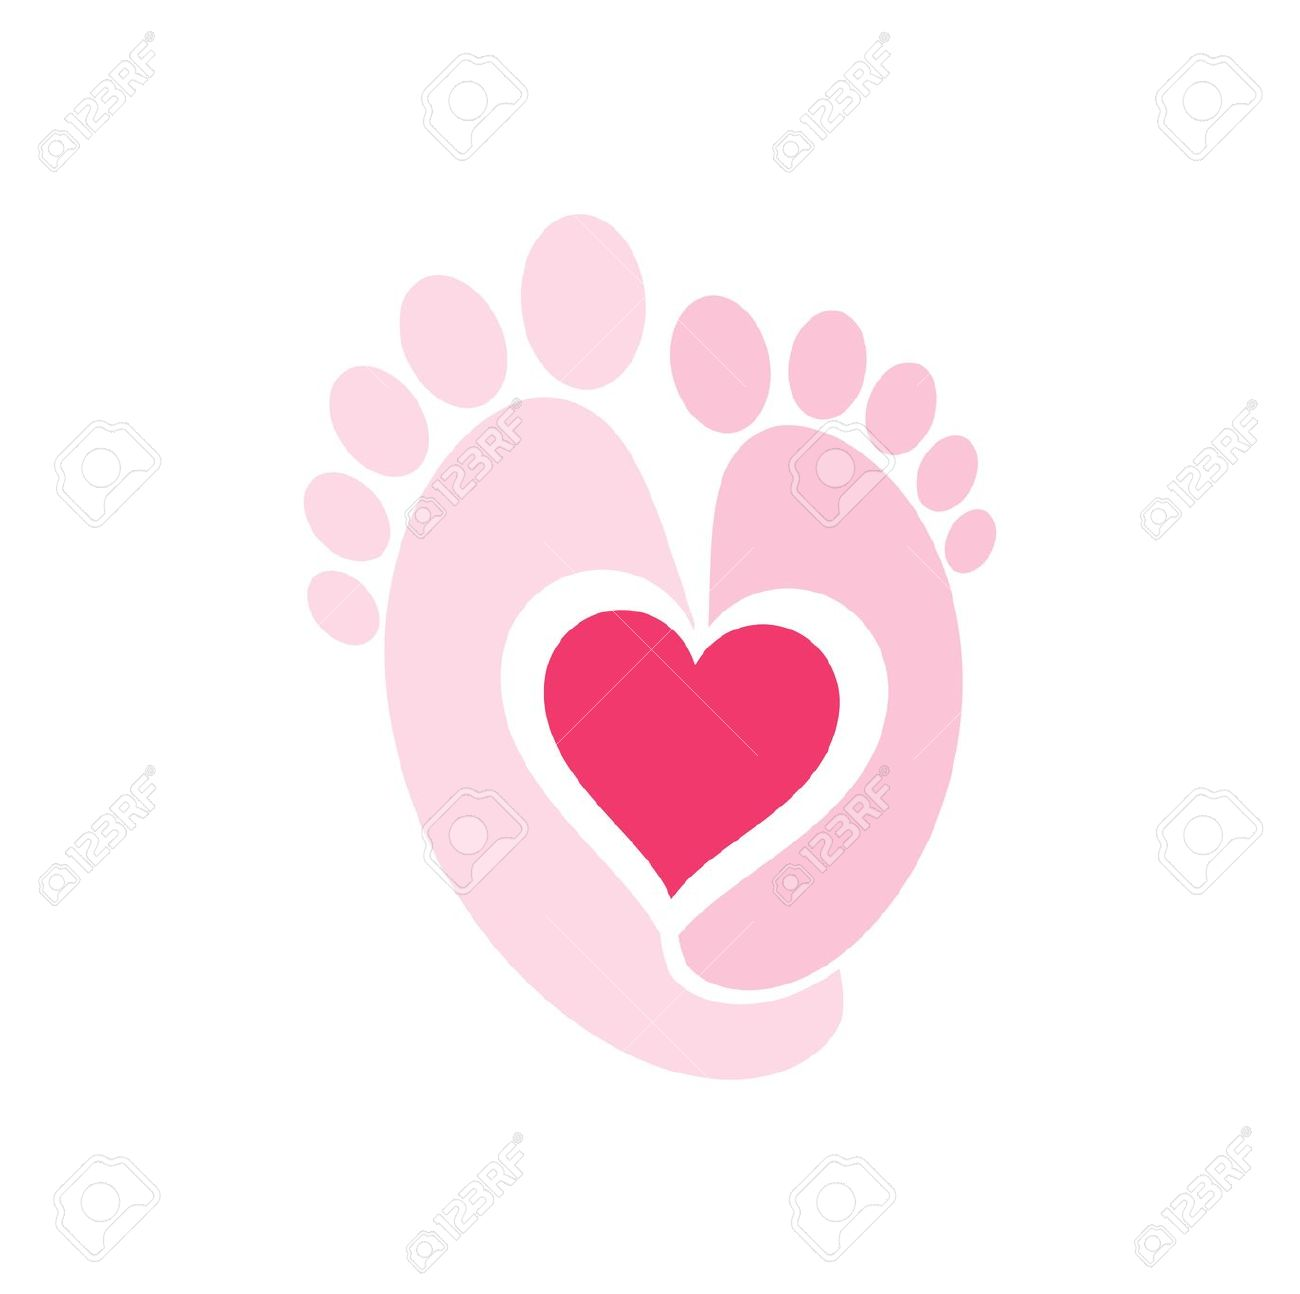 Baby Legs Symbol. Royalty Free Cliparts, Vectors, And Stock.